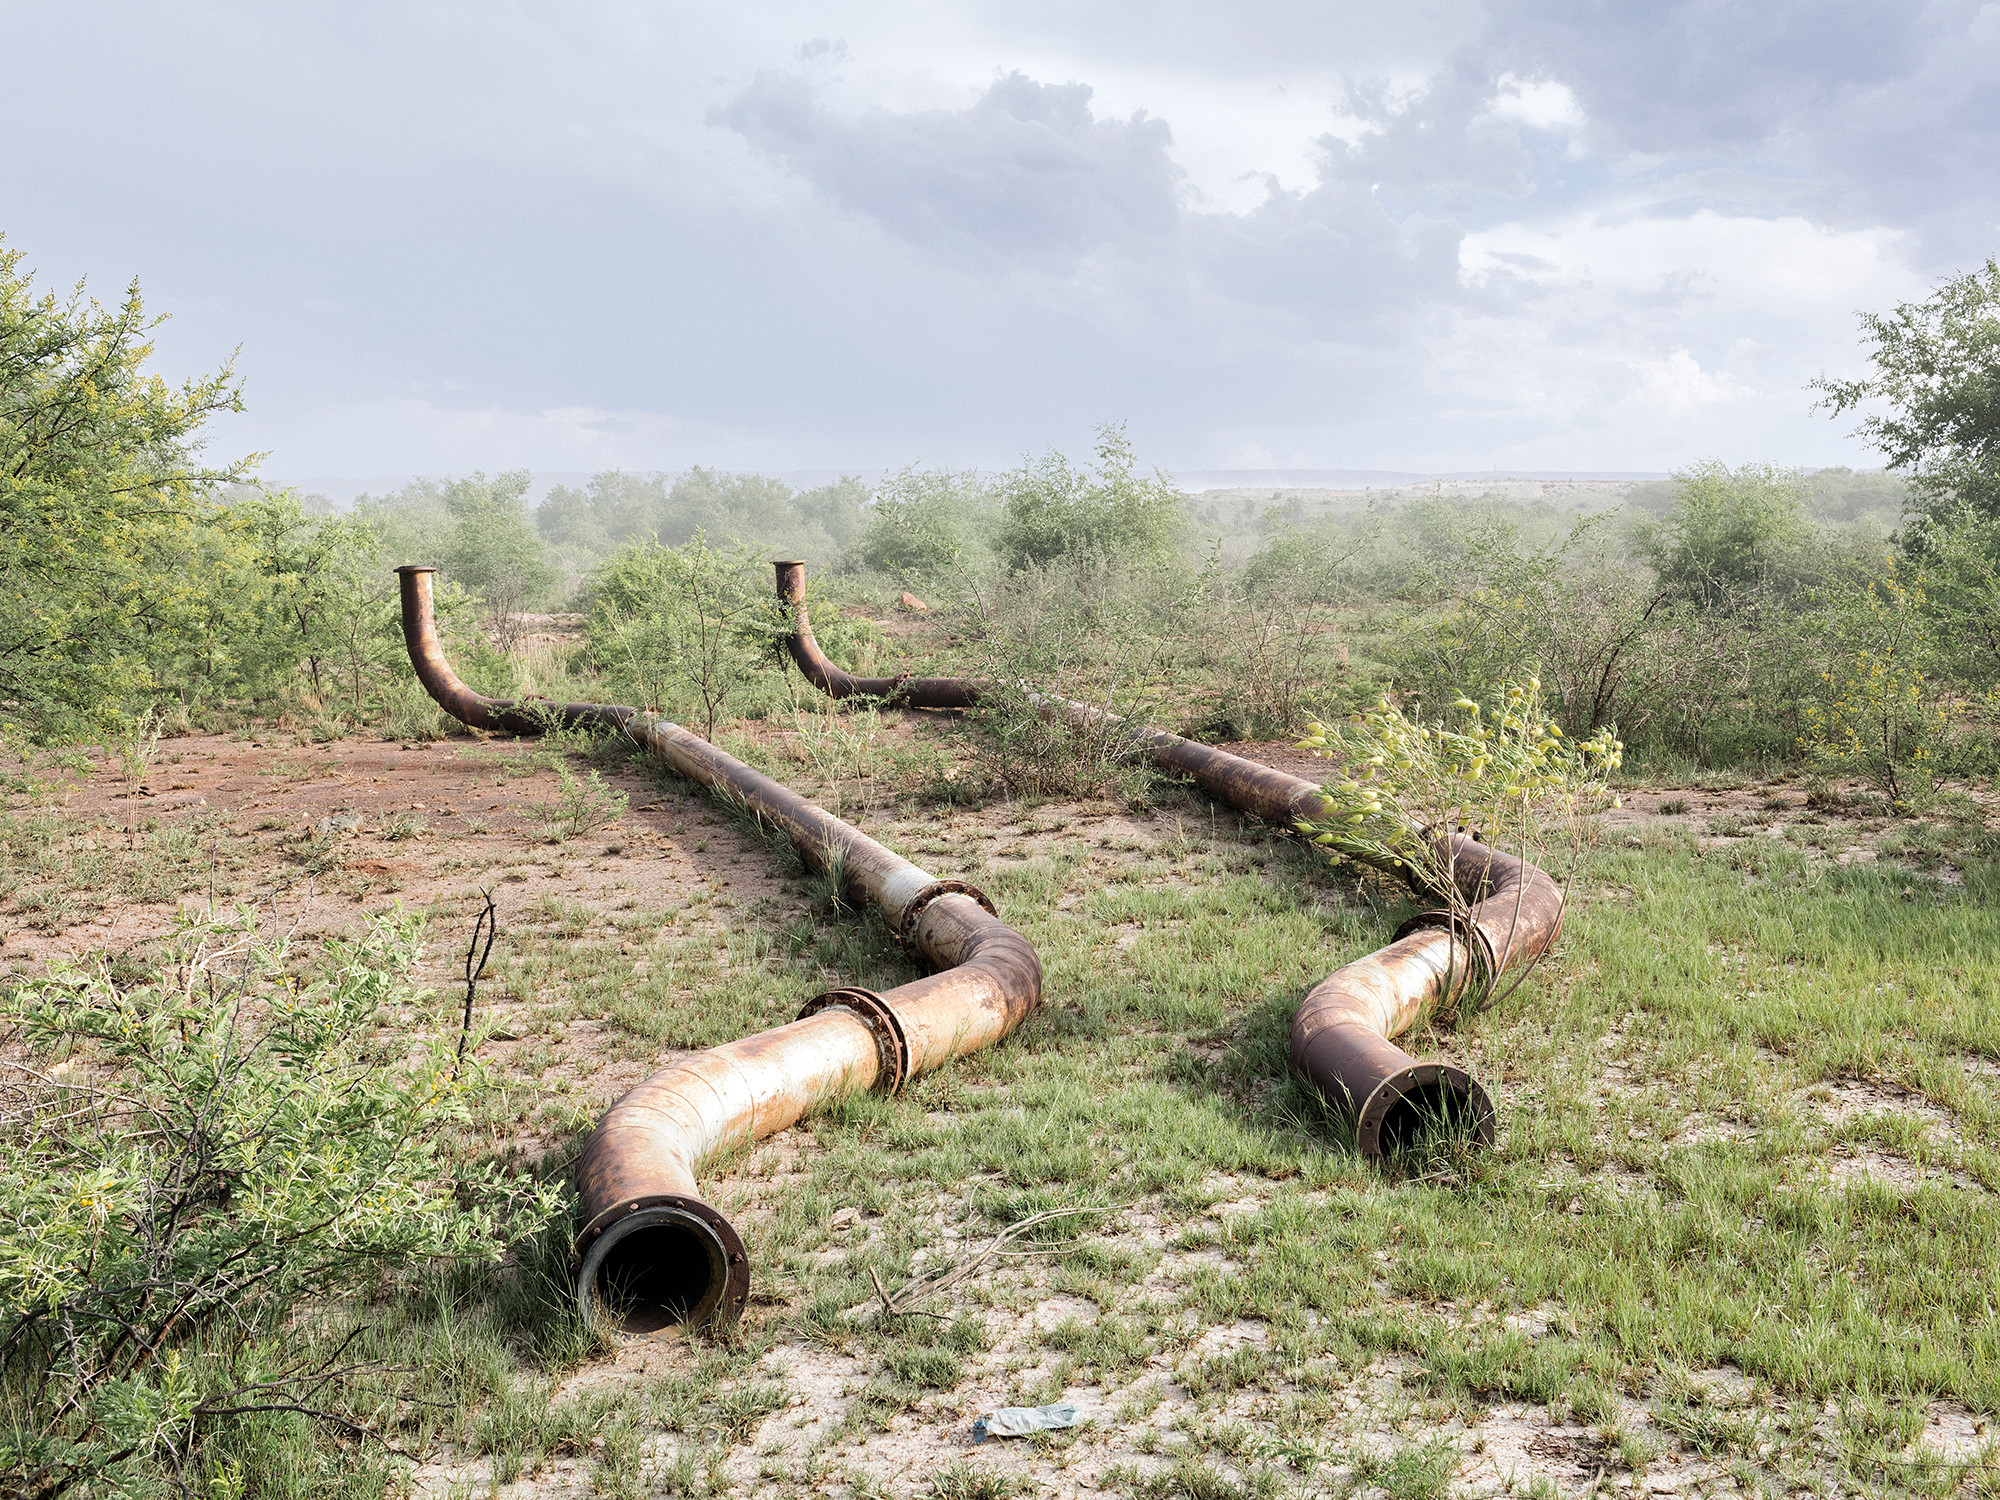 Water pipes, Fraser Alexander Tailings (Lonmin – Western Plats – Dam 5 Tailings Complex), Wonderkop, Marikana, North West, Western Limb